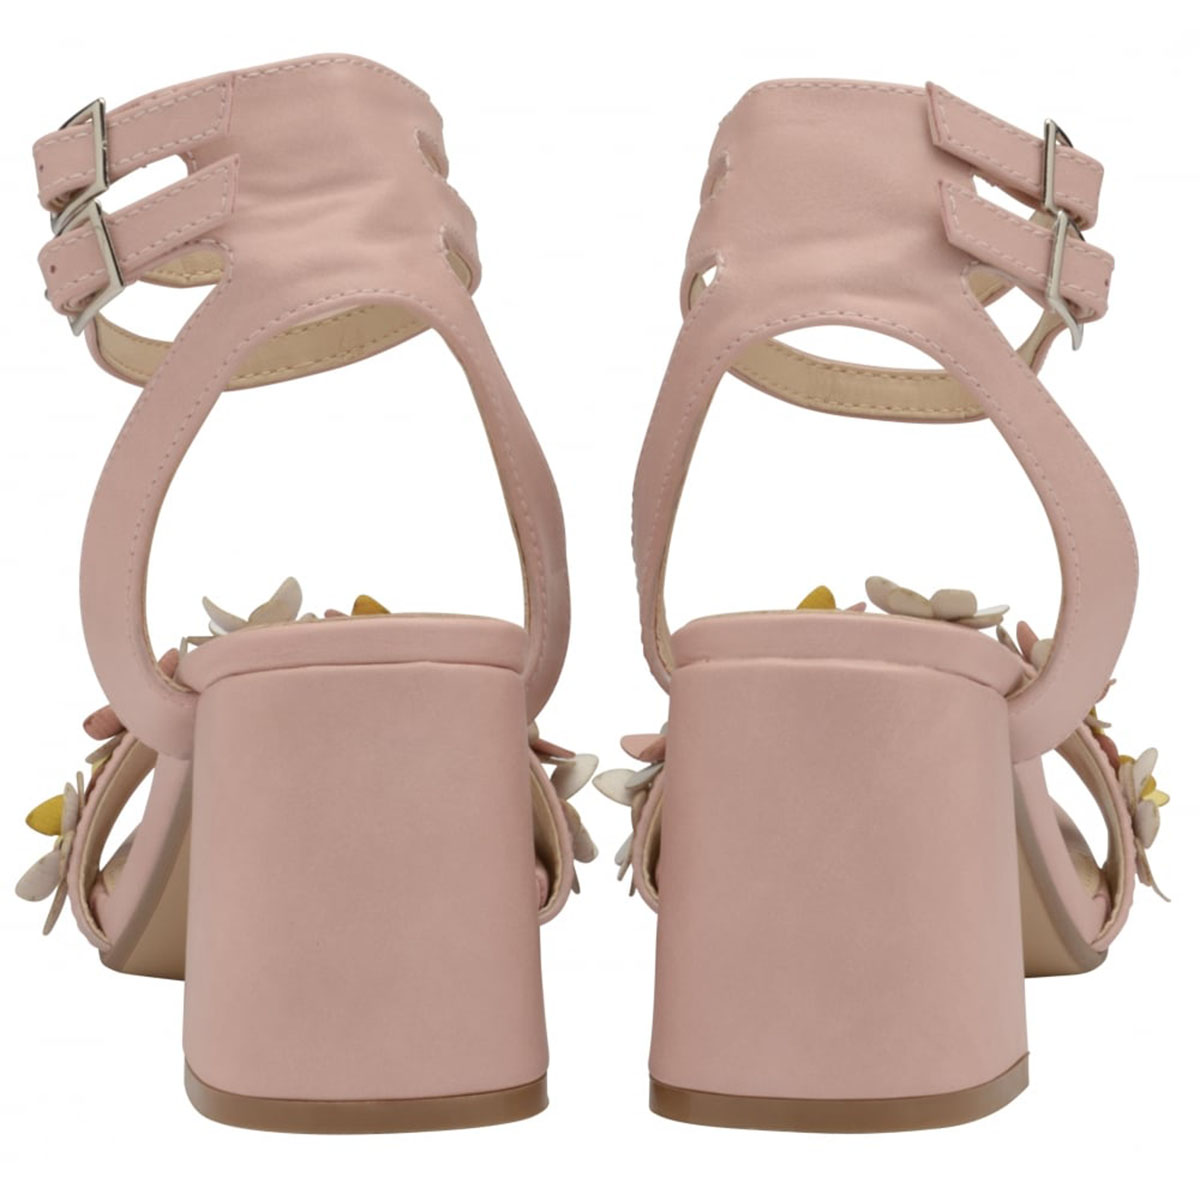 7b956a7baef7 Sentinel LADIES DOLCIS NIAMH PINK BLOCK HEEL ANKLE PEEP-TOE SANDALS STRAPPY  SHOES UK 3-